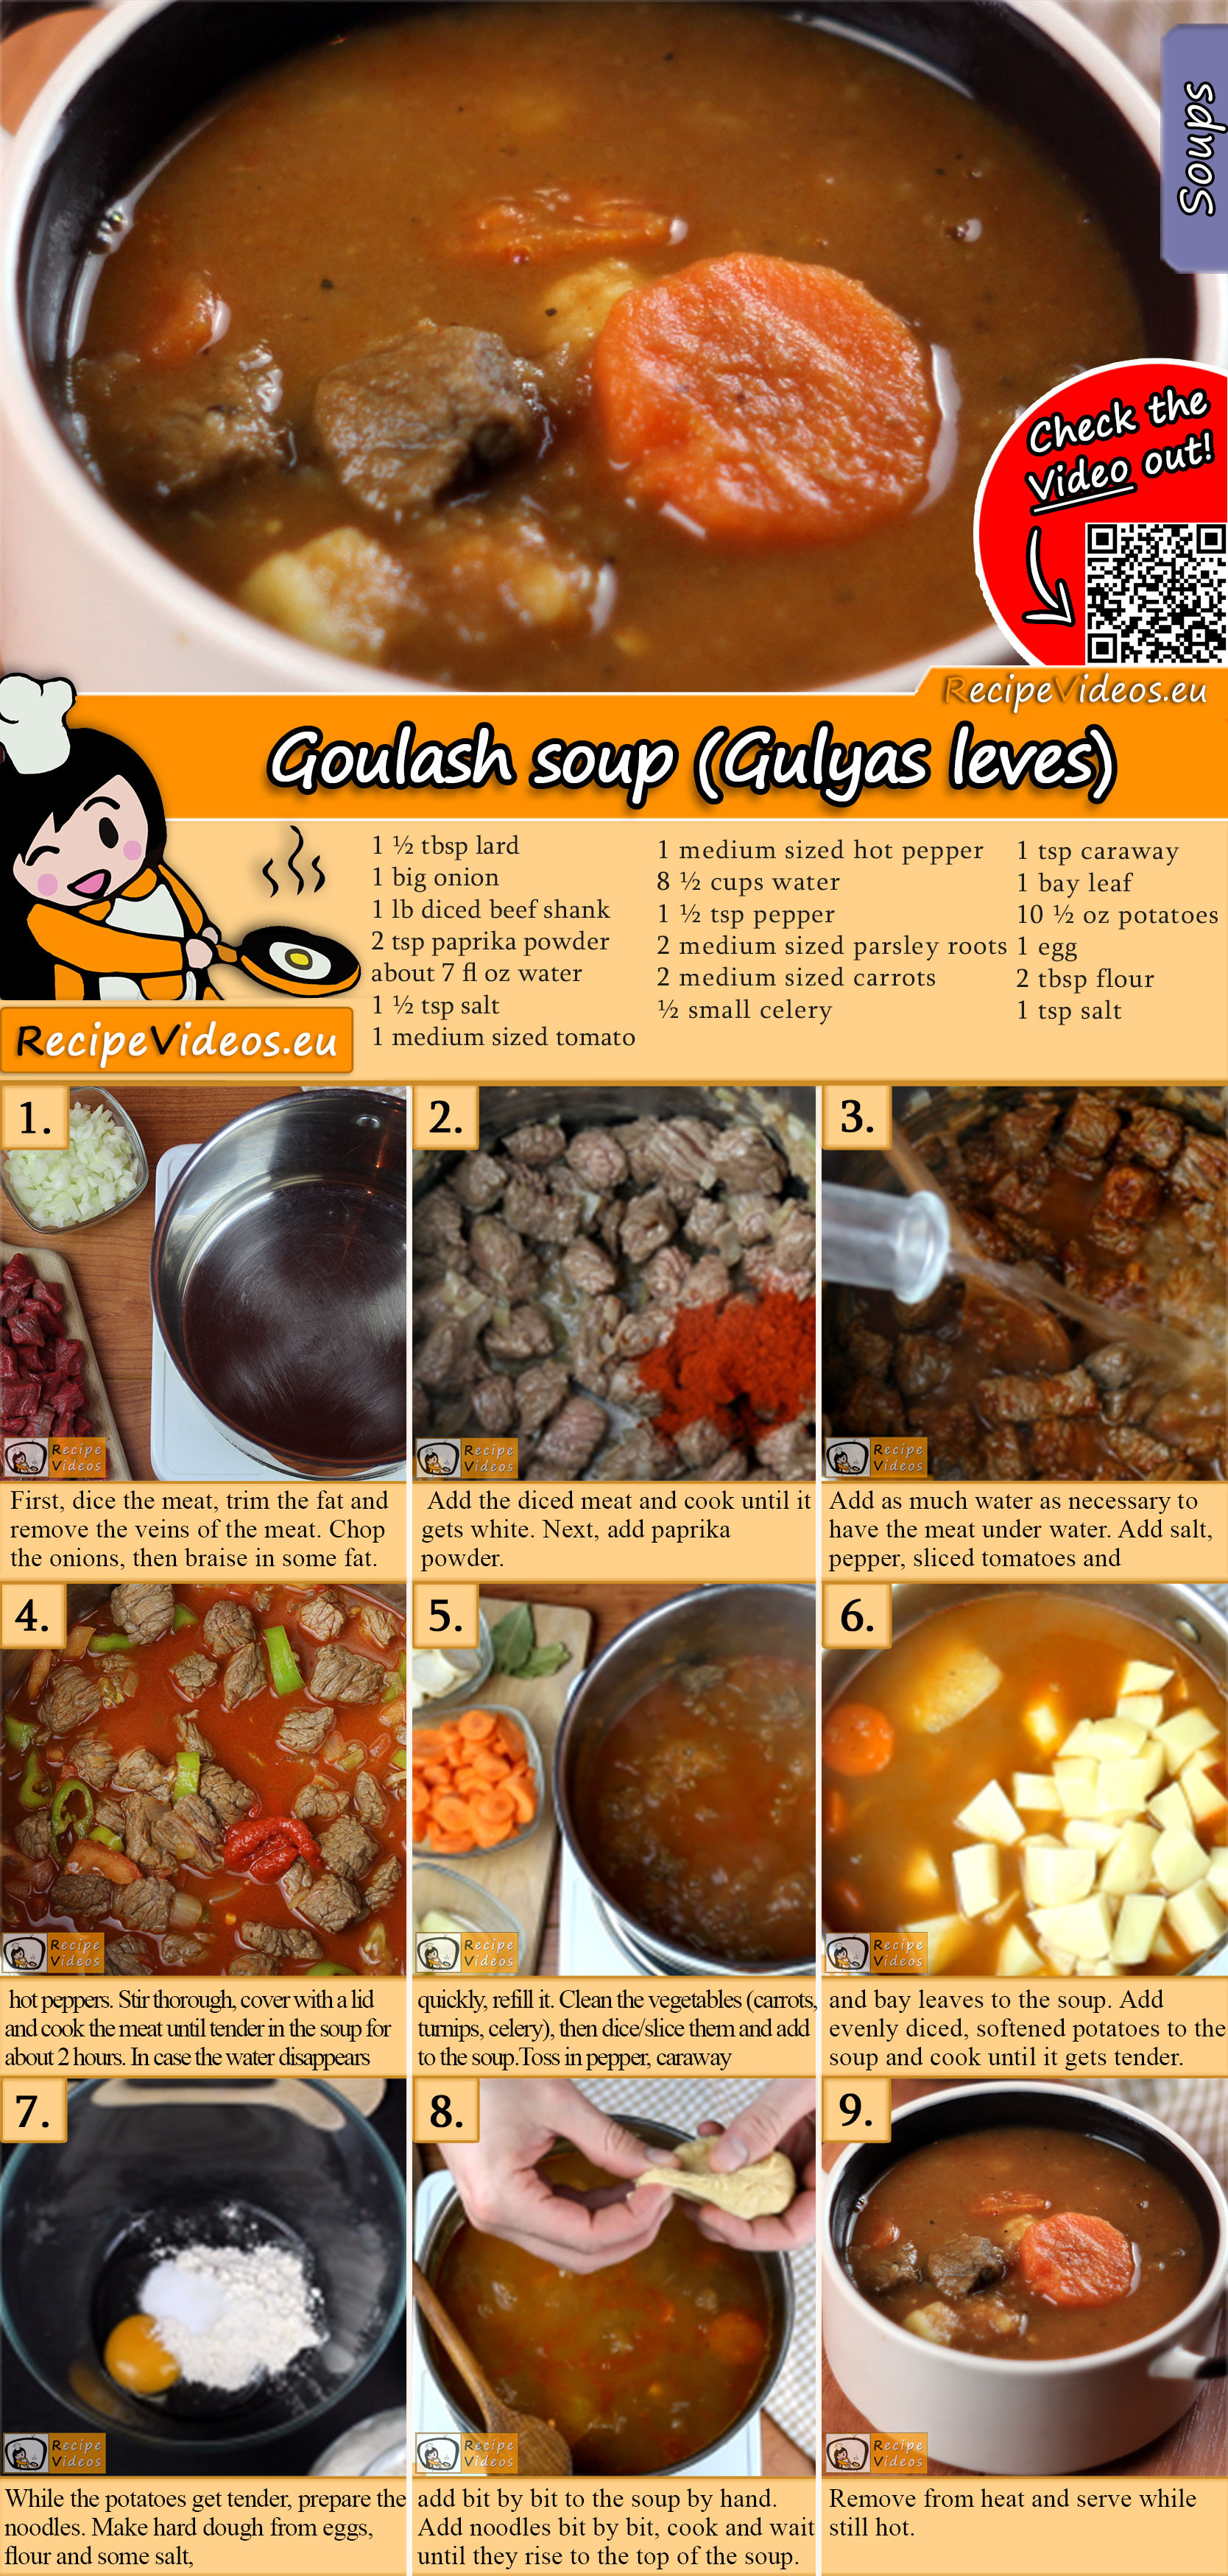 Goulash soup (Gulyas leves) recipe with video